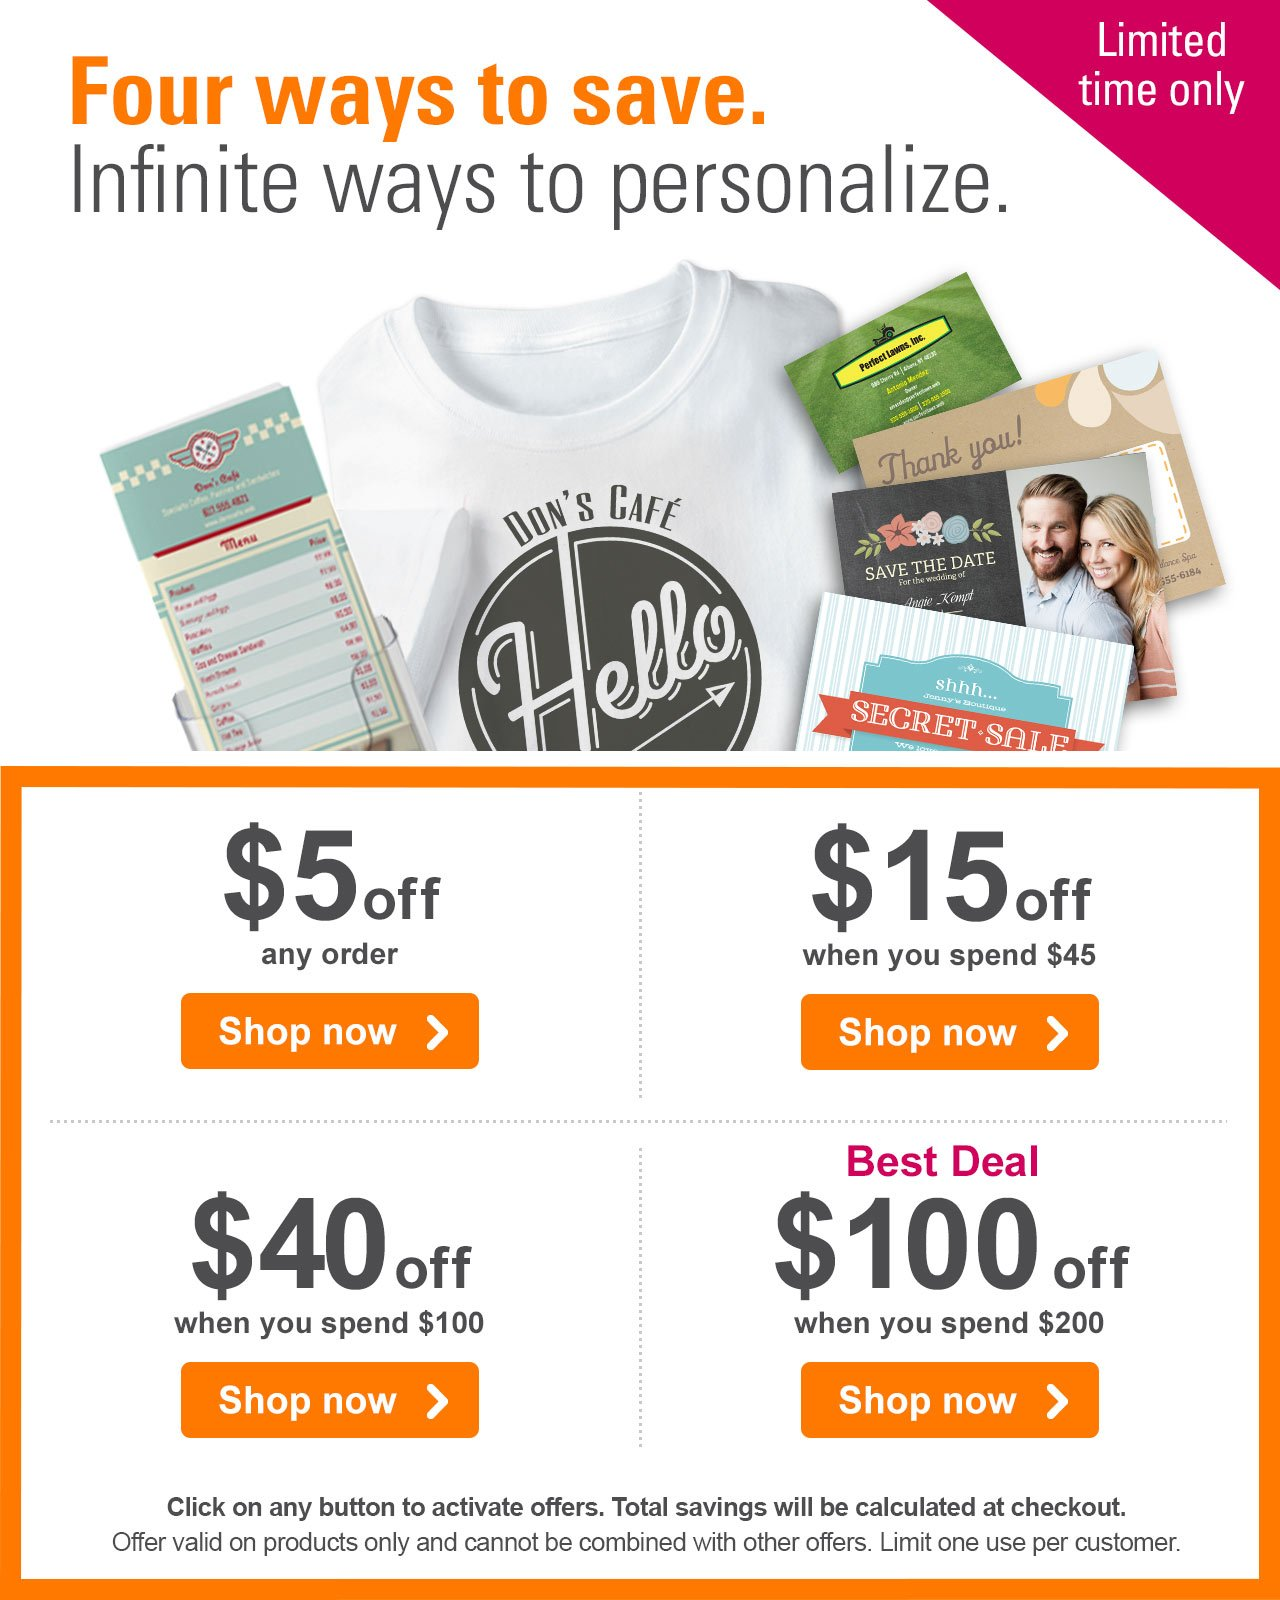 Four ways to save. Infinite ways to personalize. Limited time only  $5 off any order Shop now › - $15 off when you spend $45 Shop now › - $40 off when you spend $100 Shop now › - Best Deal - $100 off when you spend $200 Shop now › Click on any button to activate all offers. Qualifying savings will be calculated at checkout. Offer valid on products only and cannot be combined with other offers. Limit one use per customer.